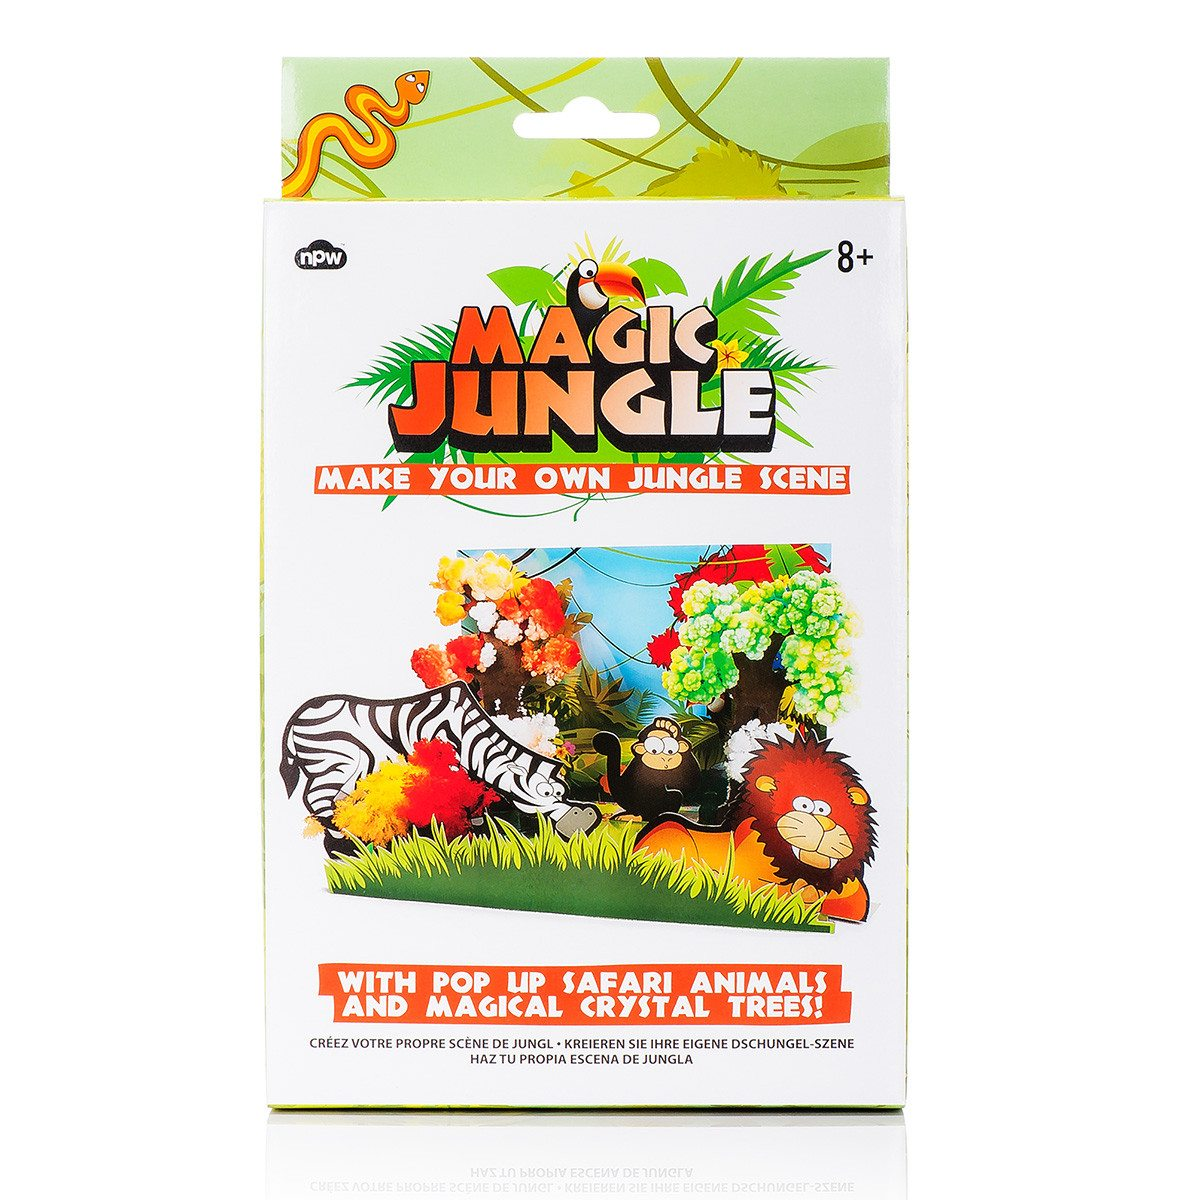 ¡Una jungla en casa! - Set desplegable